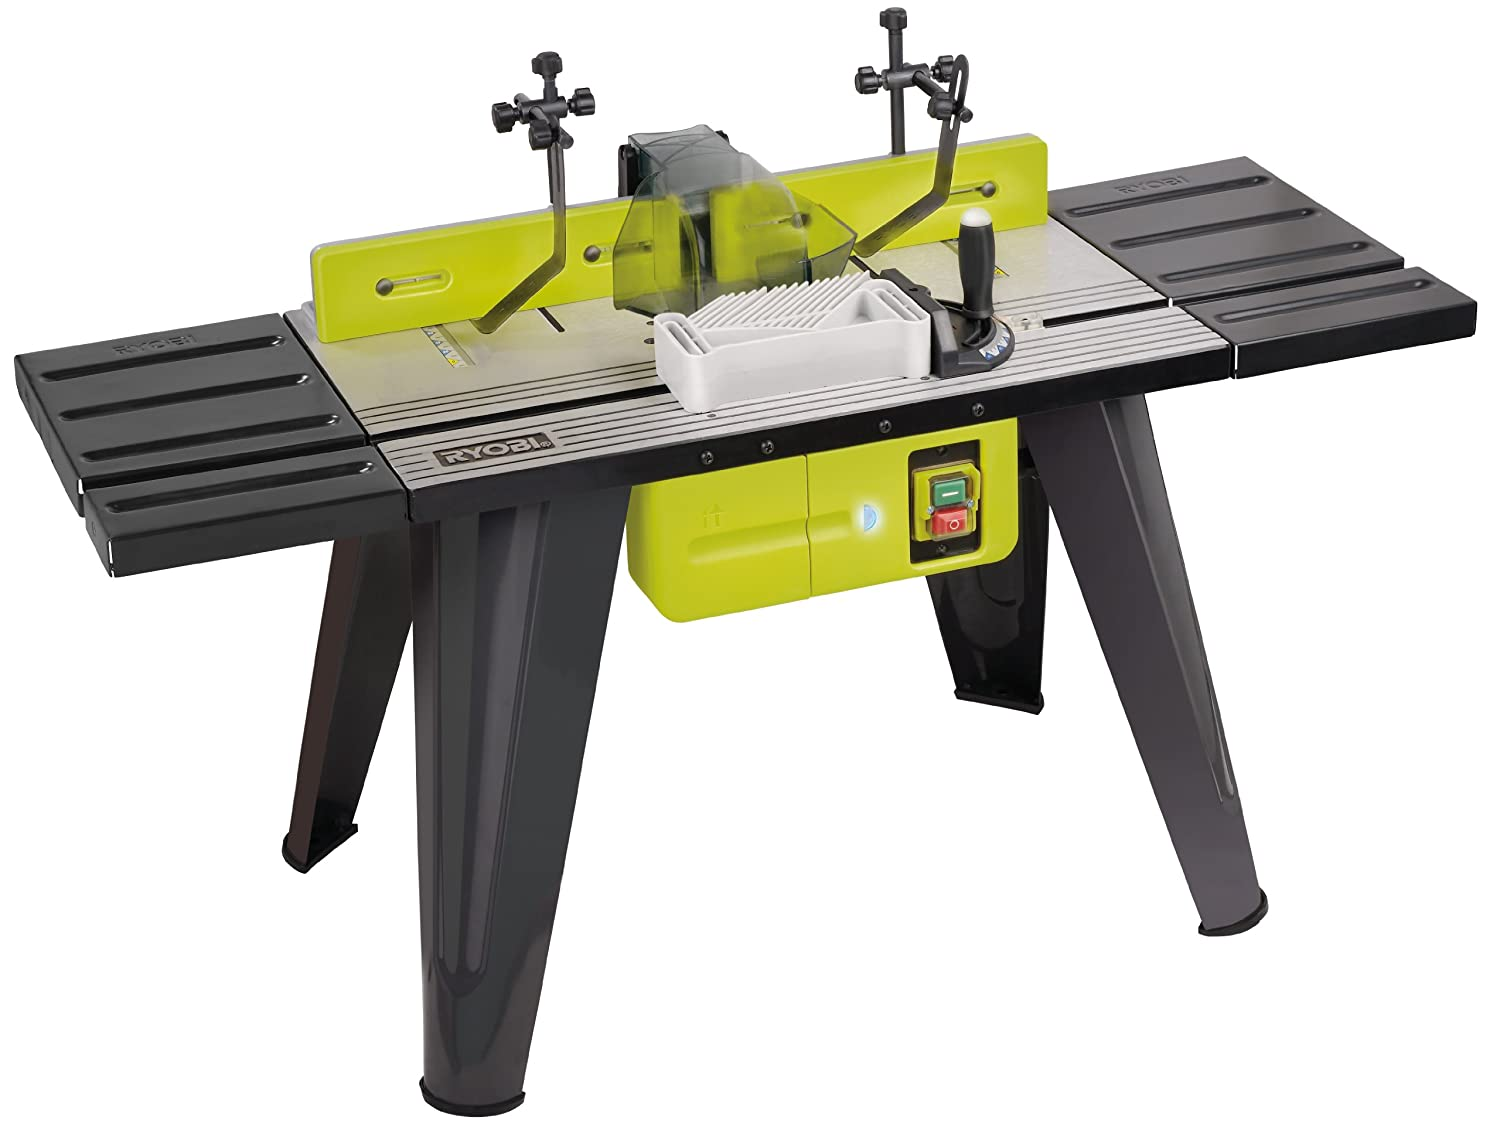 Ryobi router table old version amazon diy tools keyboard keysfo Choice Image